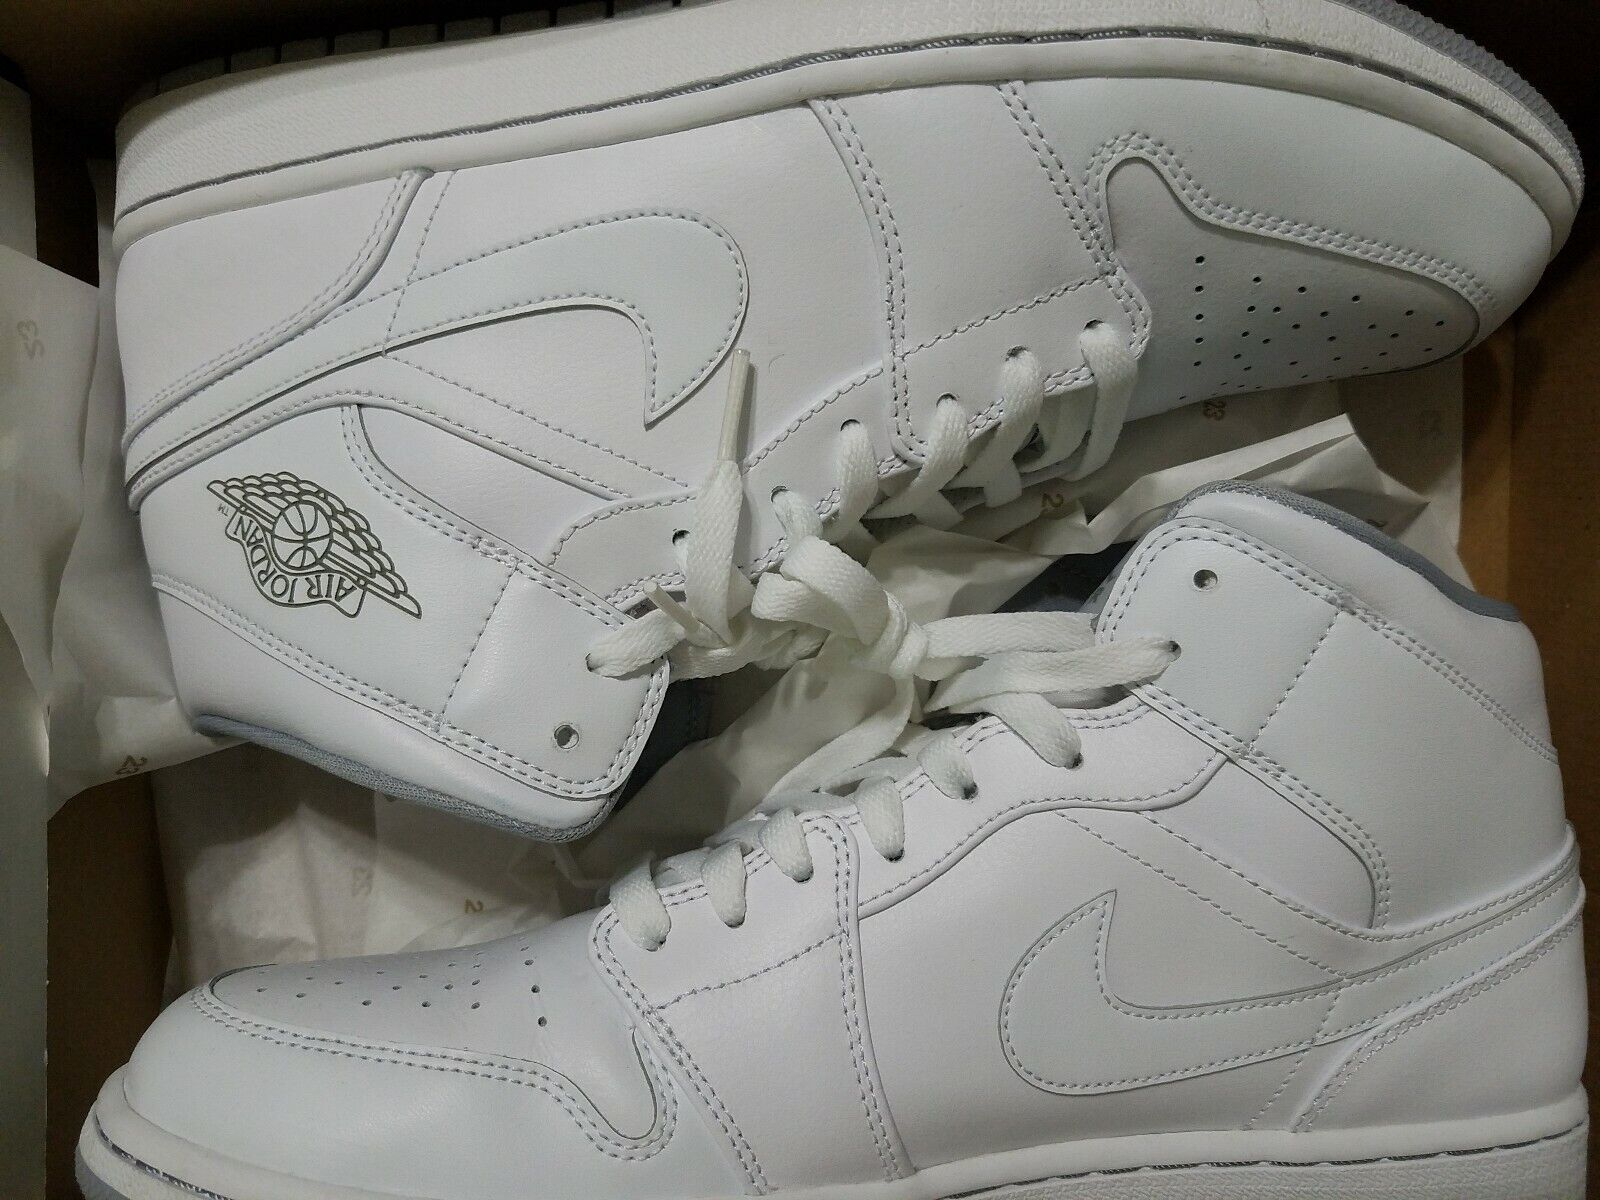 NIKE AIR JORDAN 1 MID - WHITE 554724-112 mens 12 used once.